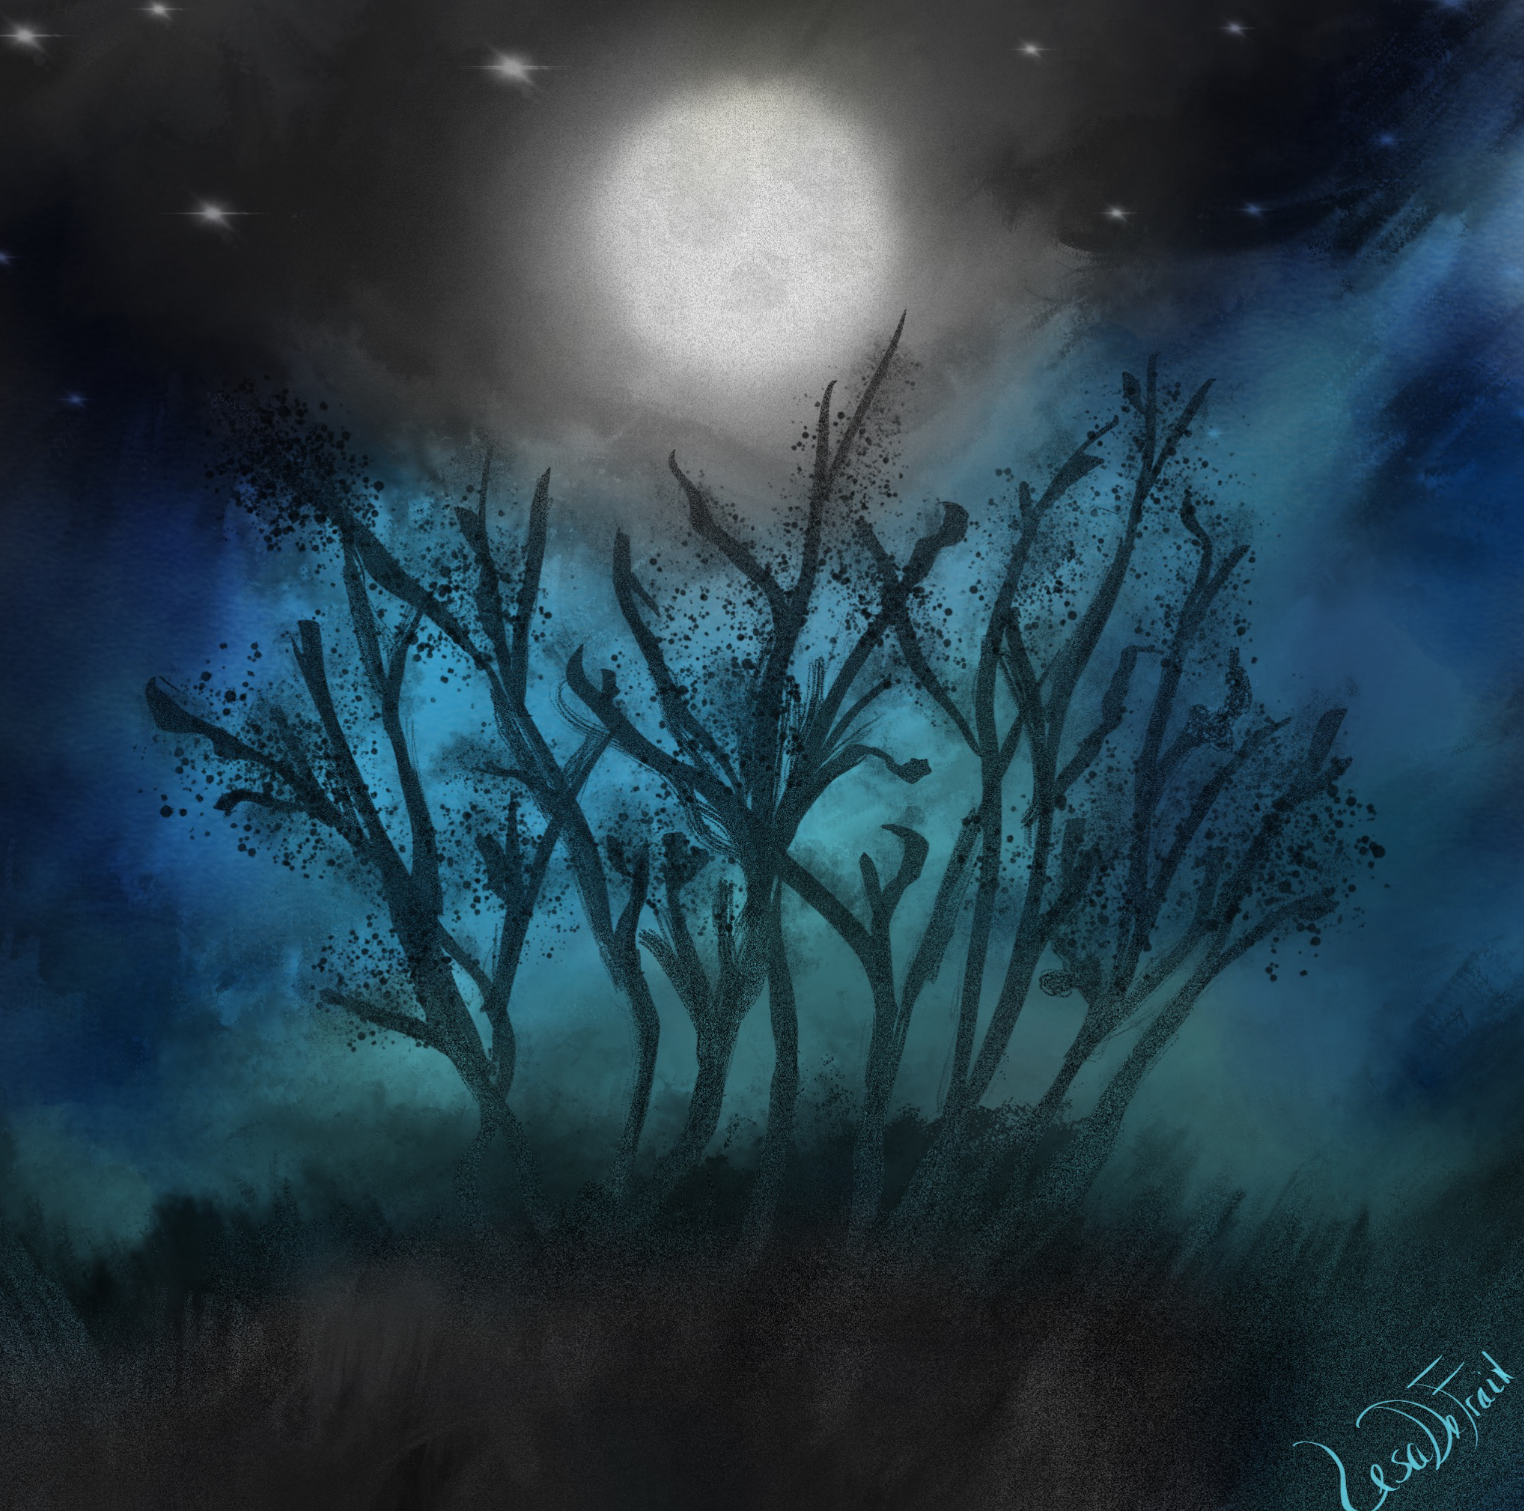 FREEHAND_NIGHT_SCENE_BY_LESA_DeF.JPG